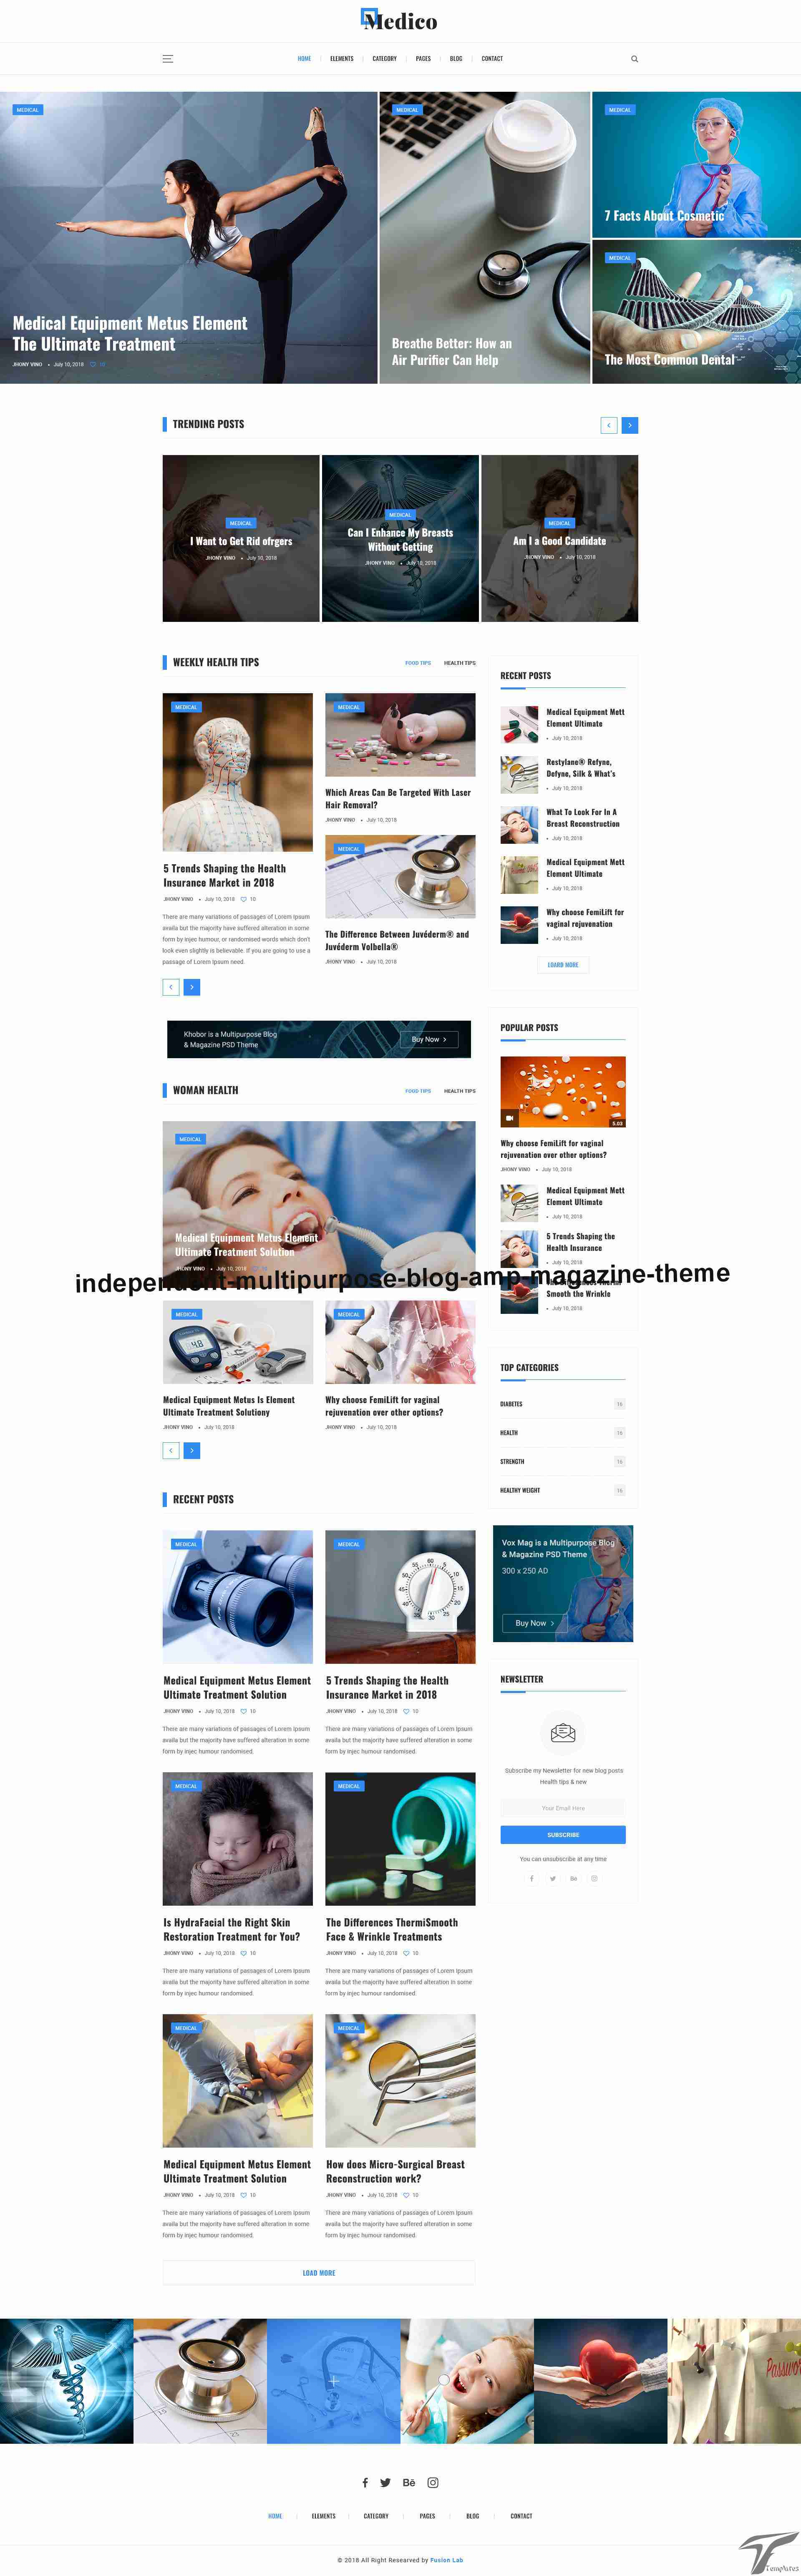 https://images.besthemes.com/images/h1_independent-multipurpose-blog-amp-magazine-theme8-_-249989416/Theme-s20s-Preview/07-Medical.jpg